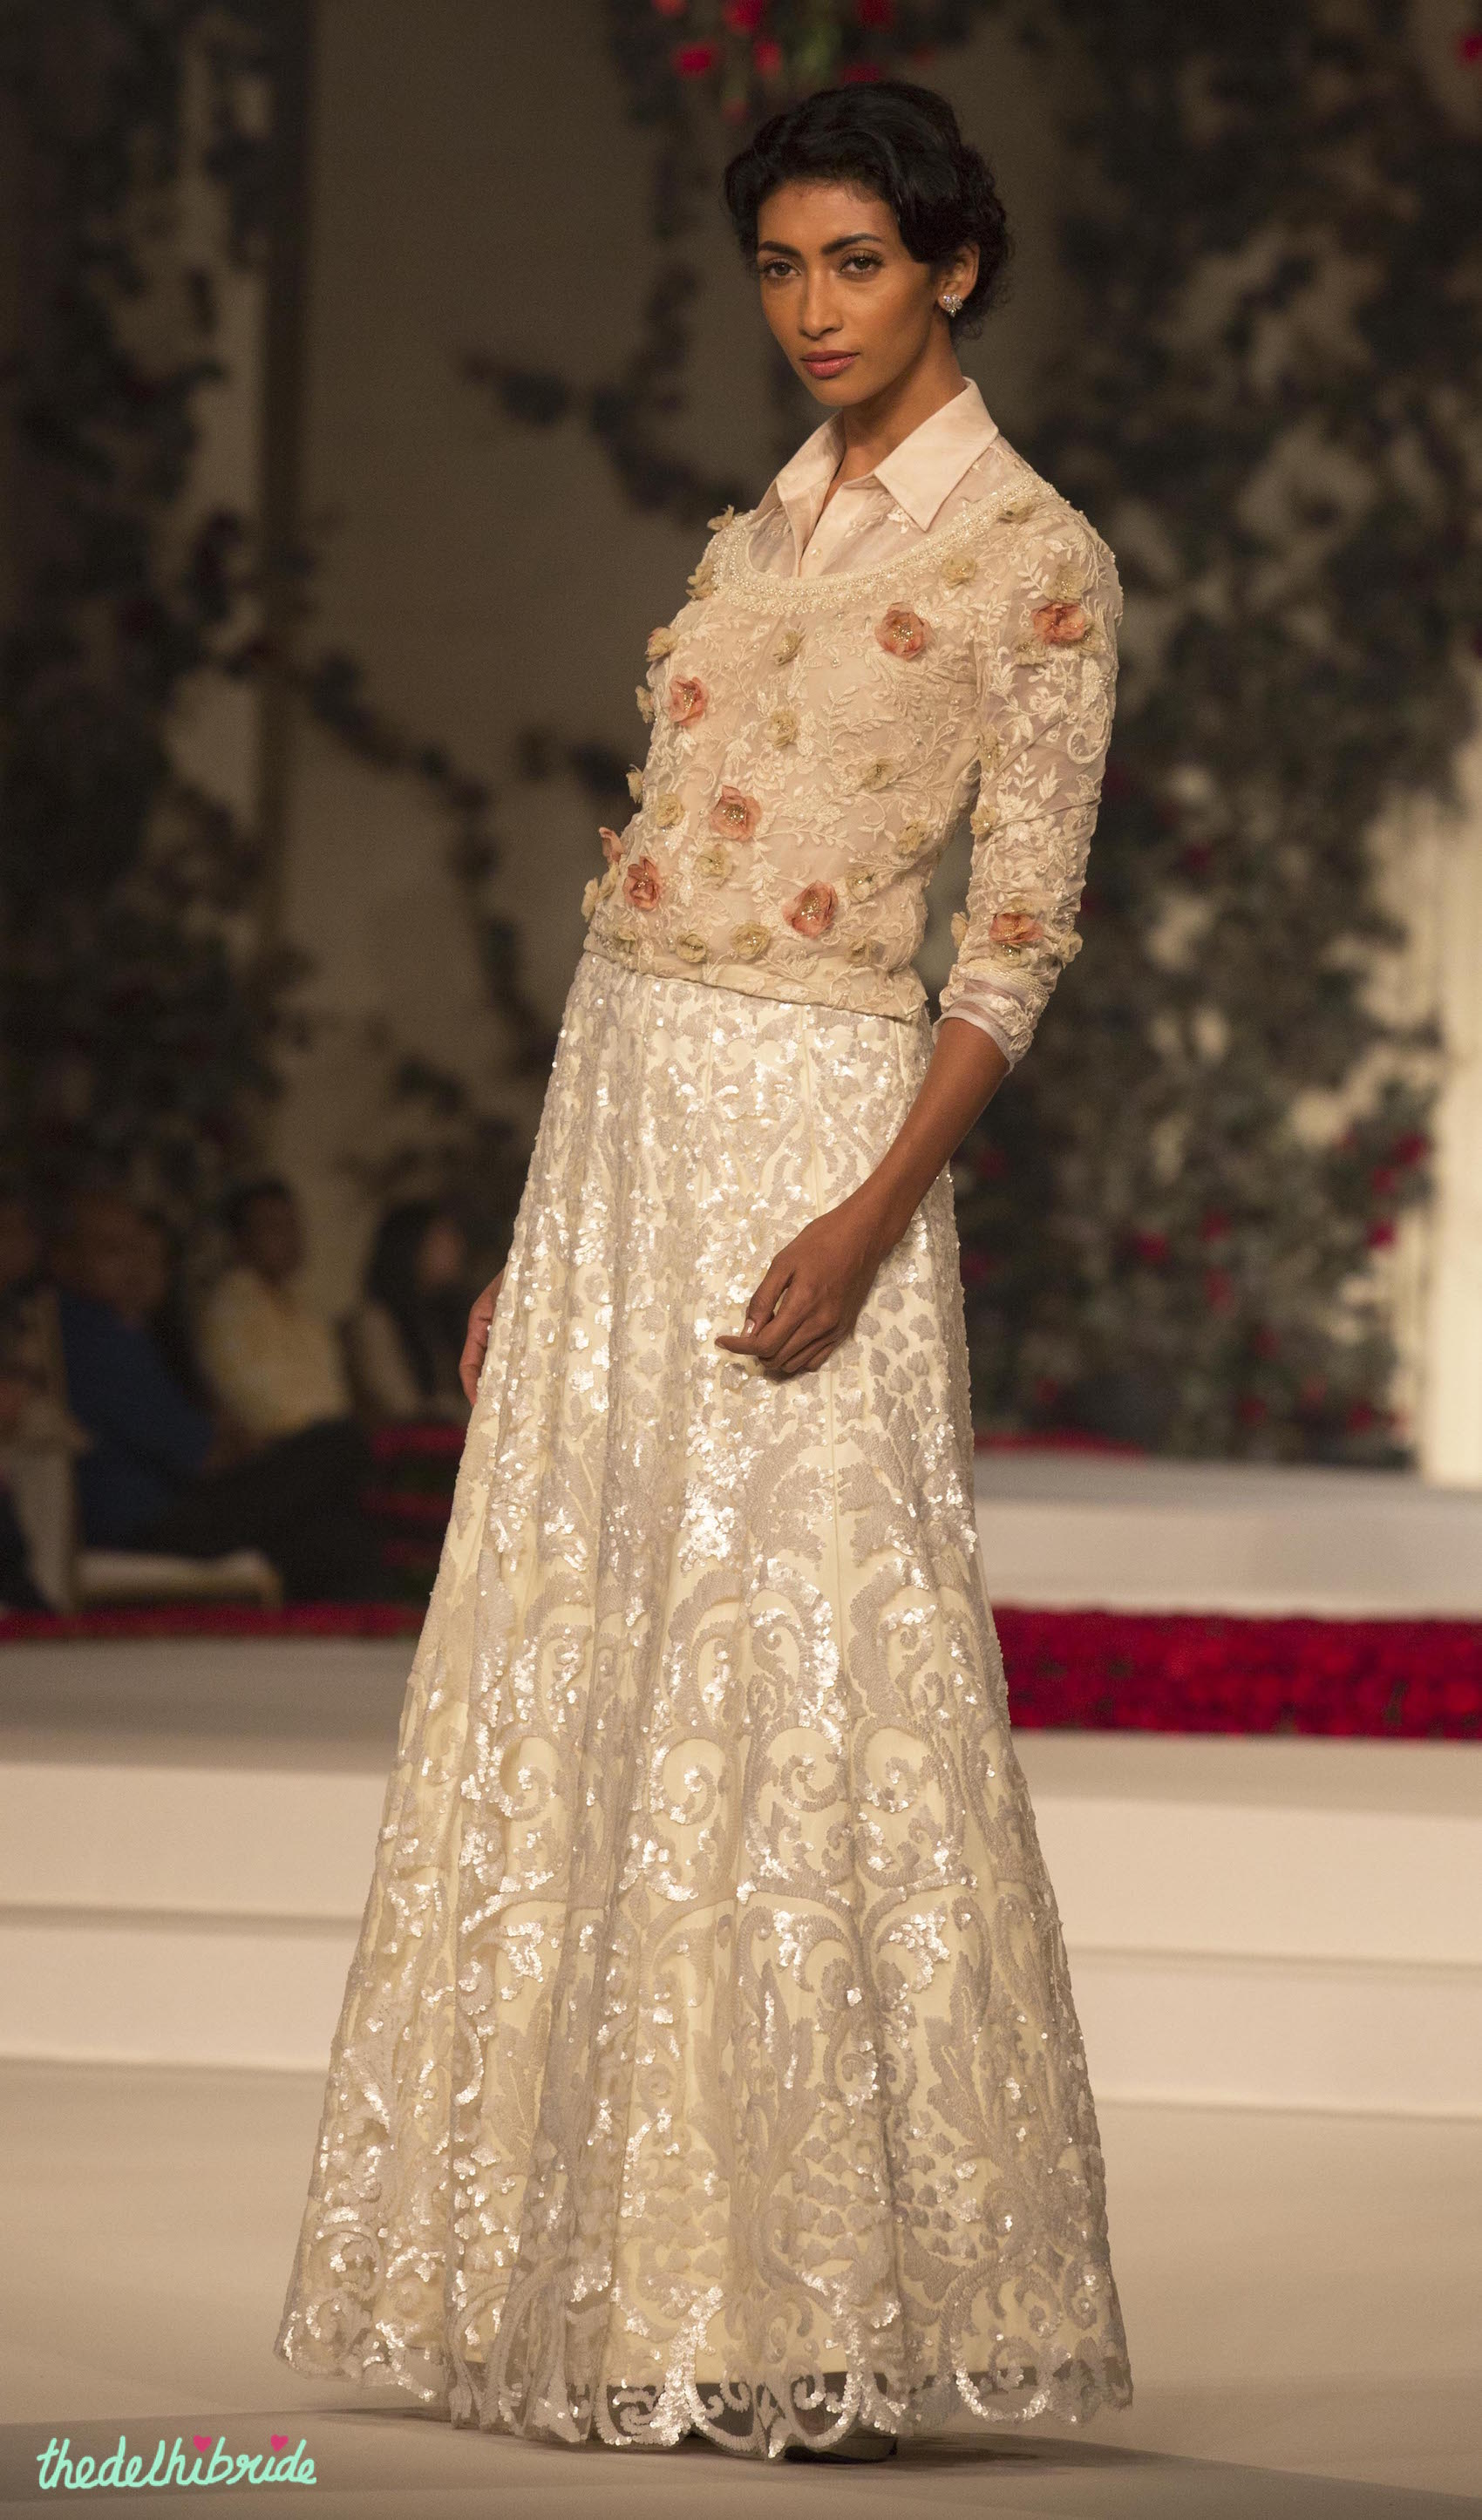 a2d7606f42 Ivory Sequin Skirt and Peach Shirt with Small Floral Motifs and Applique  layer - Varun Bahl